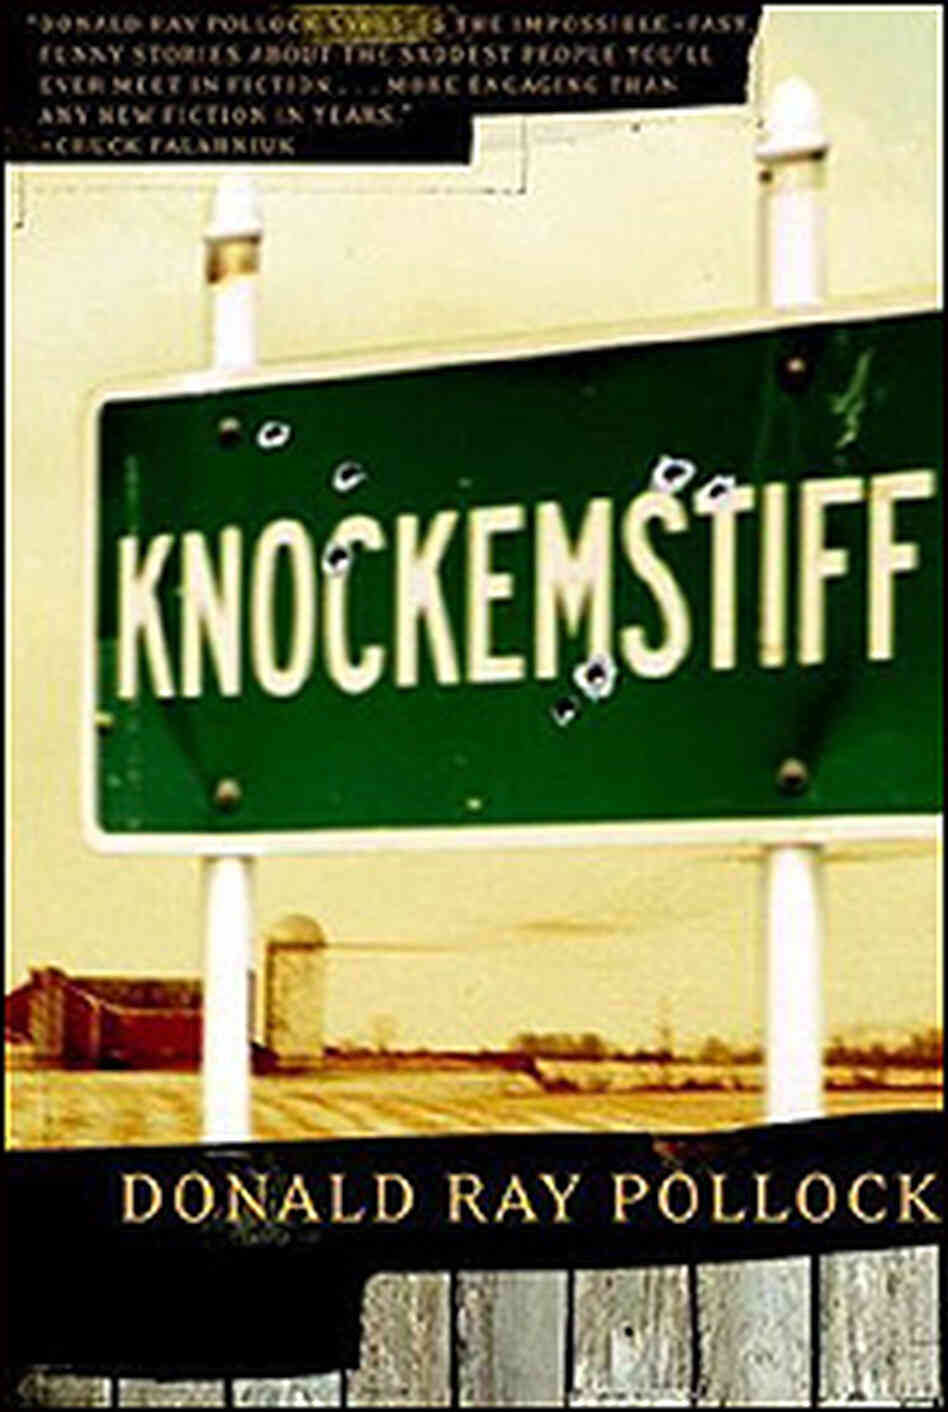 'Knockemstiff' book cover